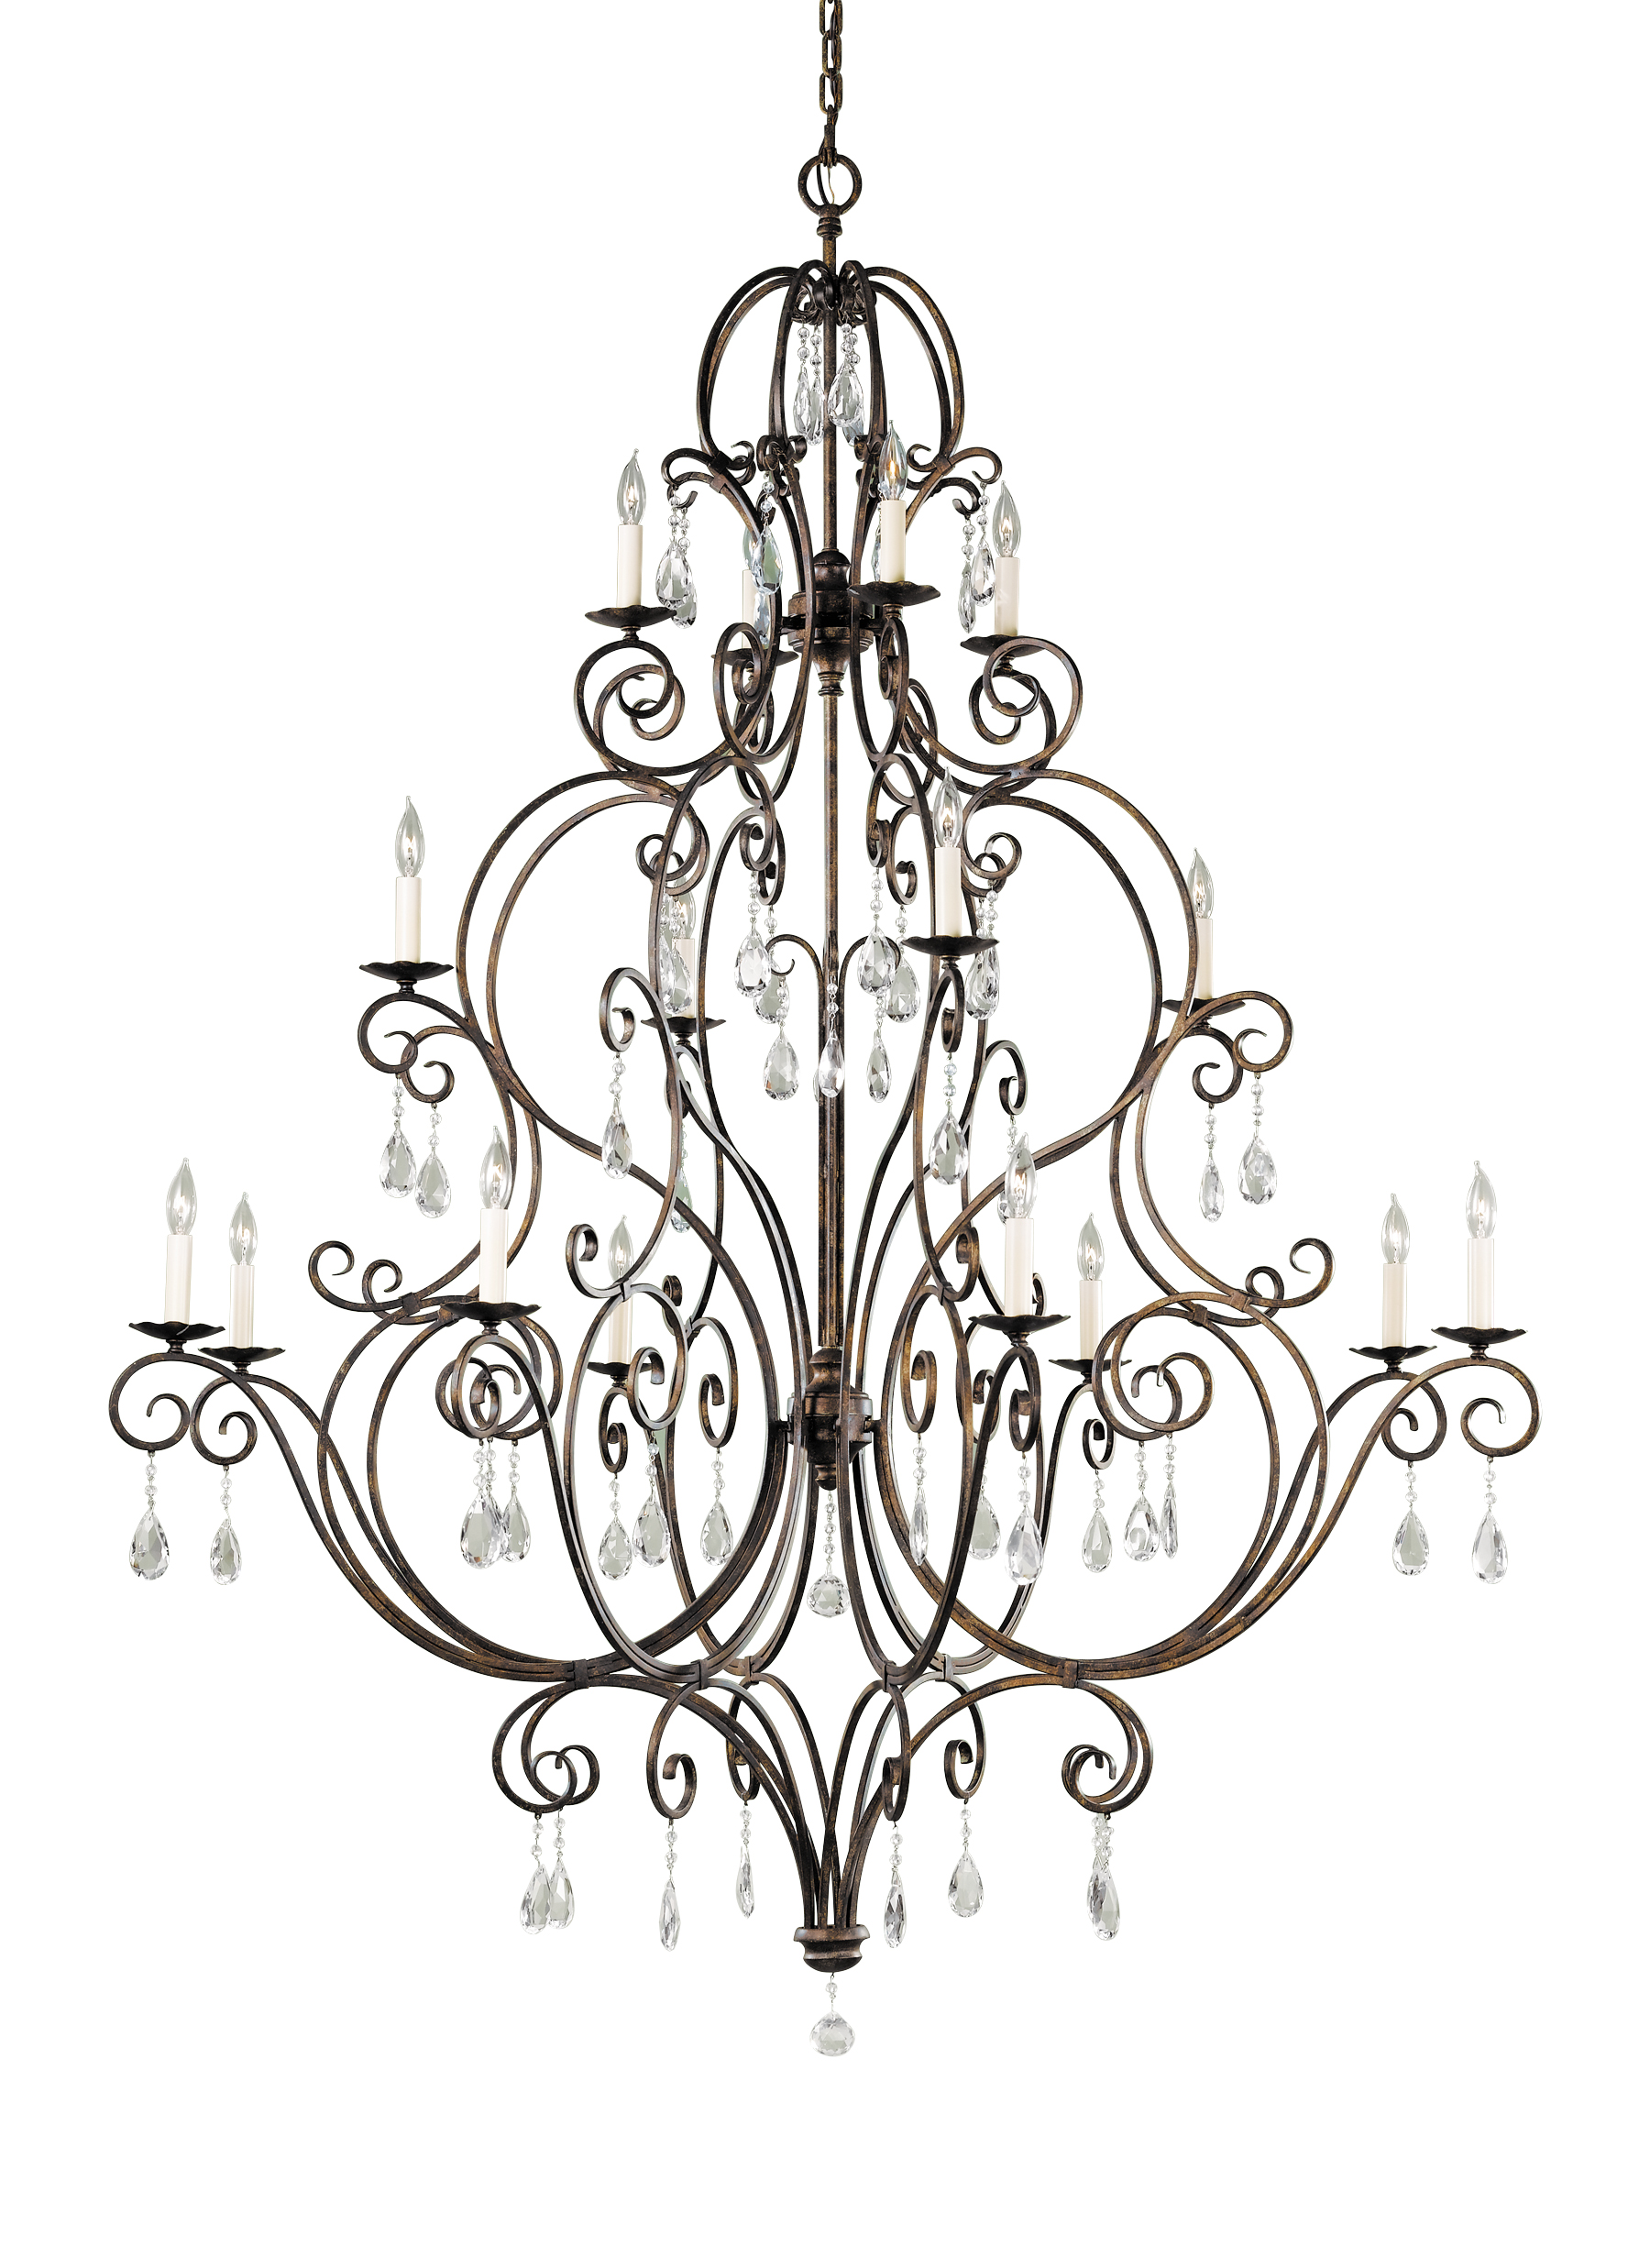 F2110844mbz16 light multi tier chandeliermocha bronze loading zoom aloadofball Gallery